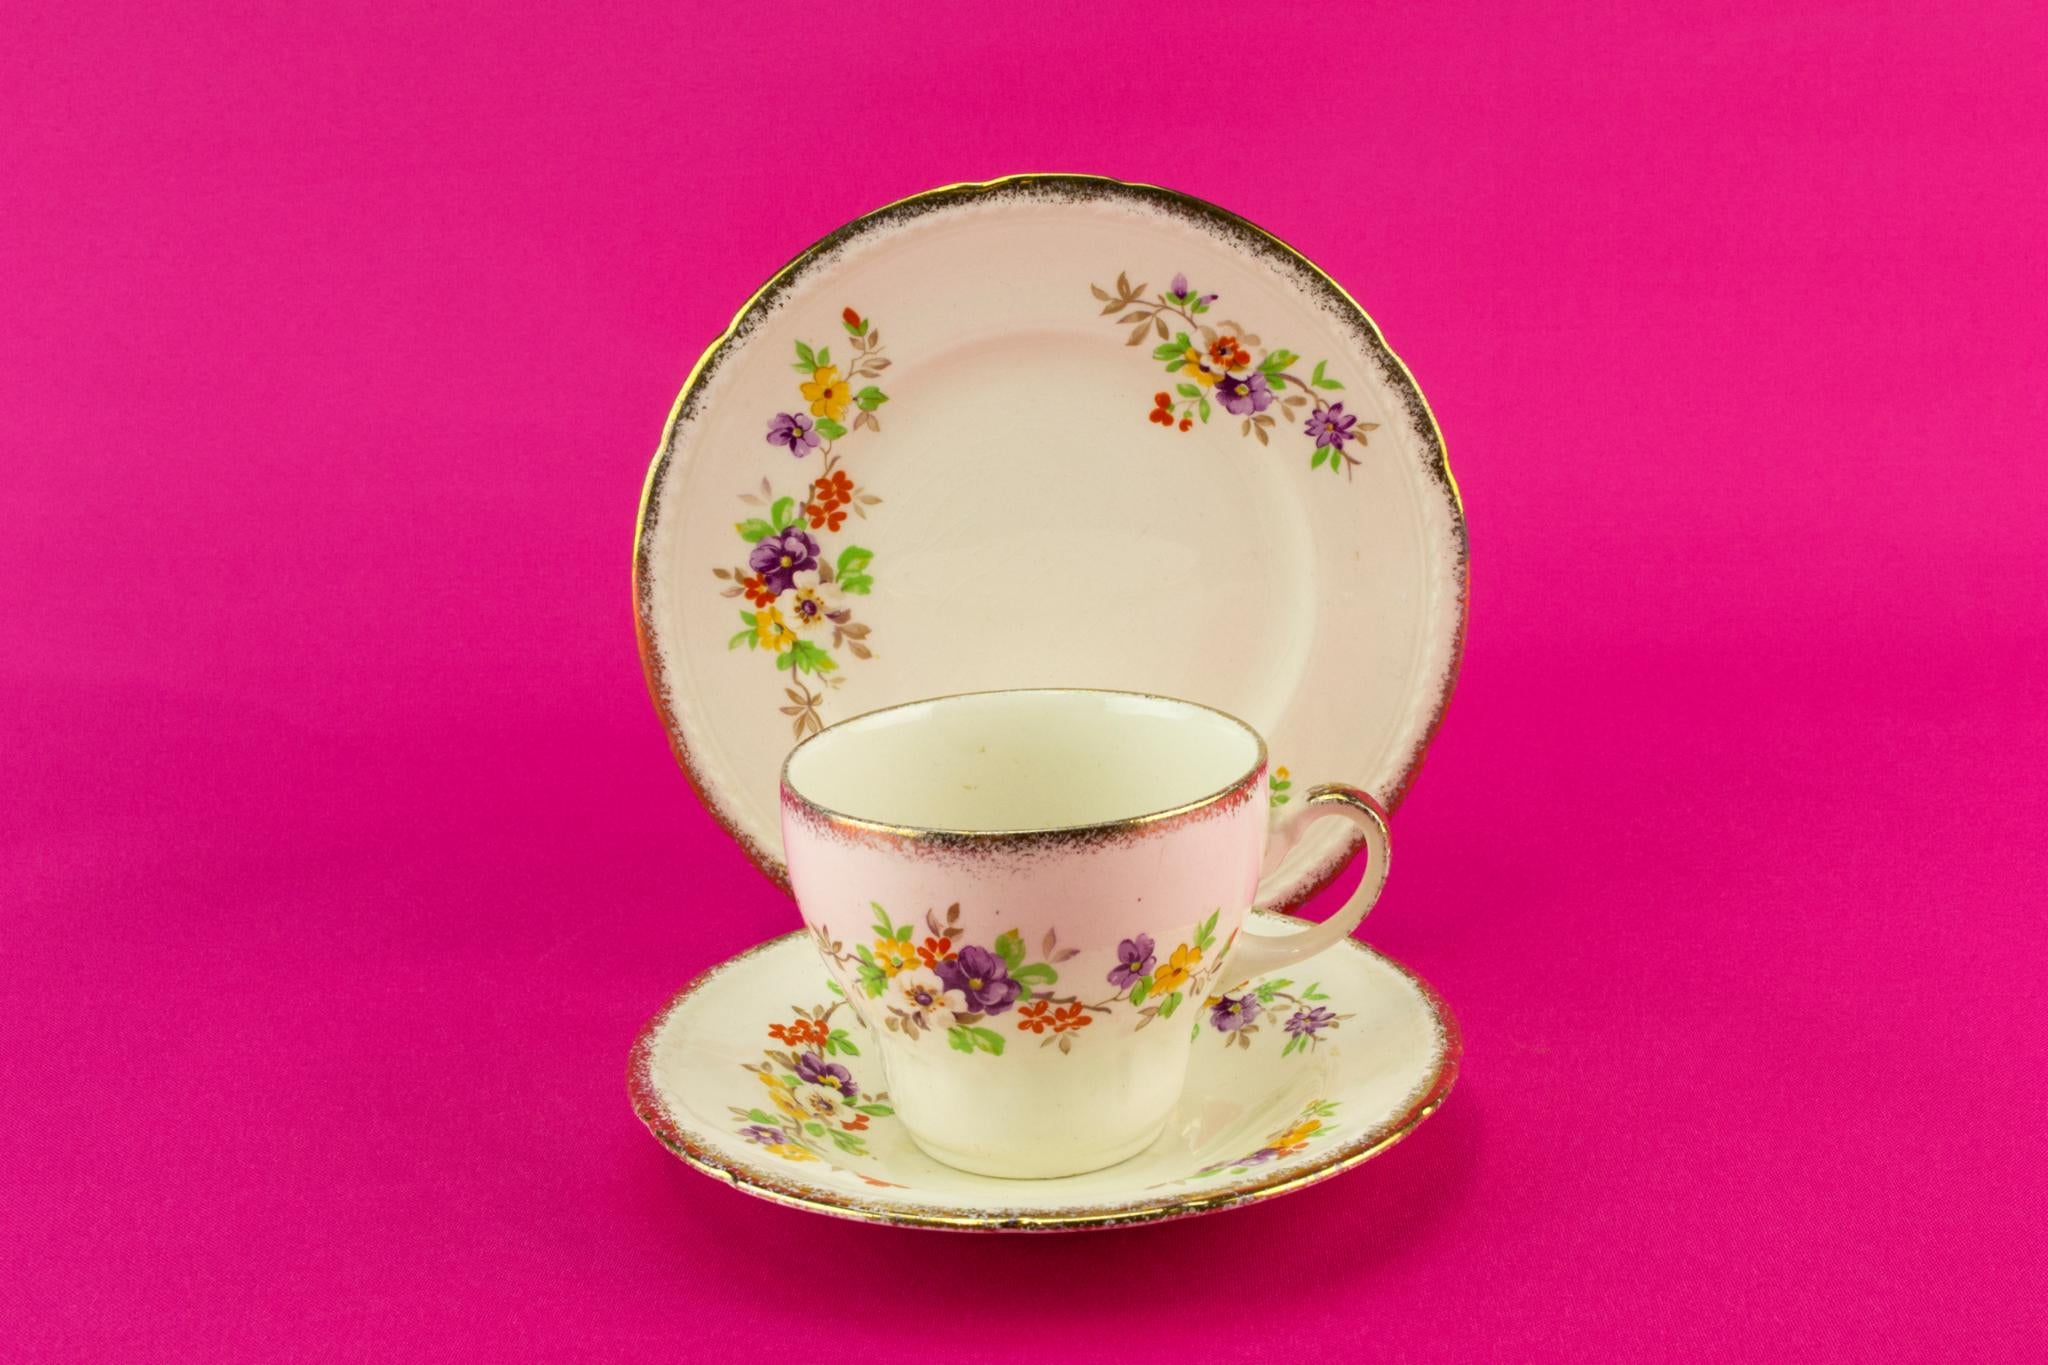 Floral tea set for two, English 1940s